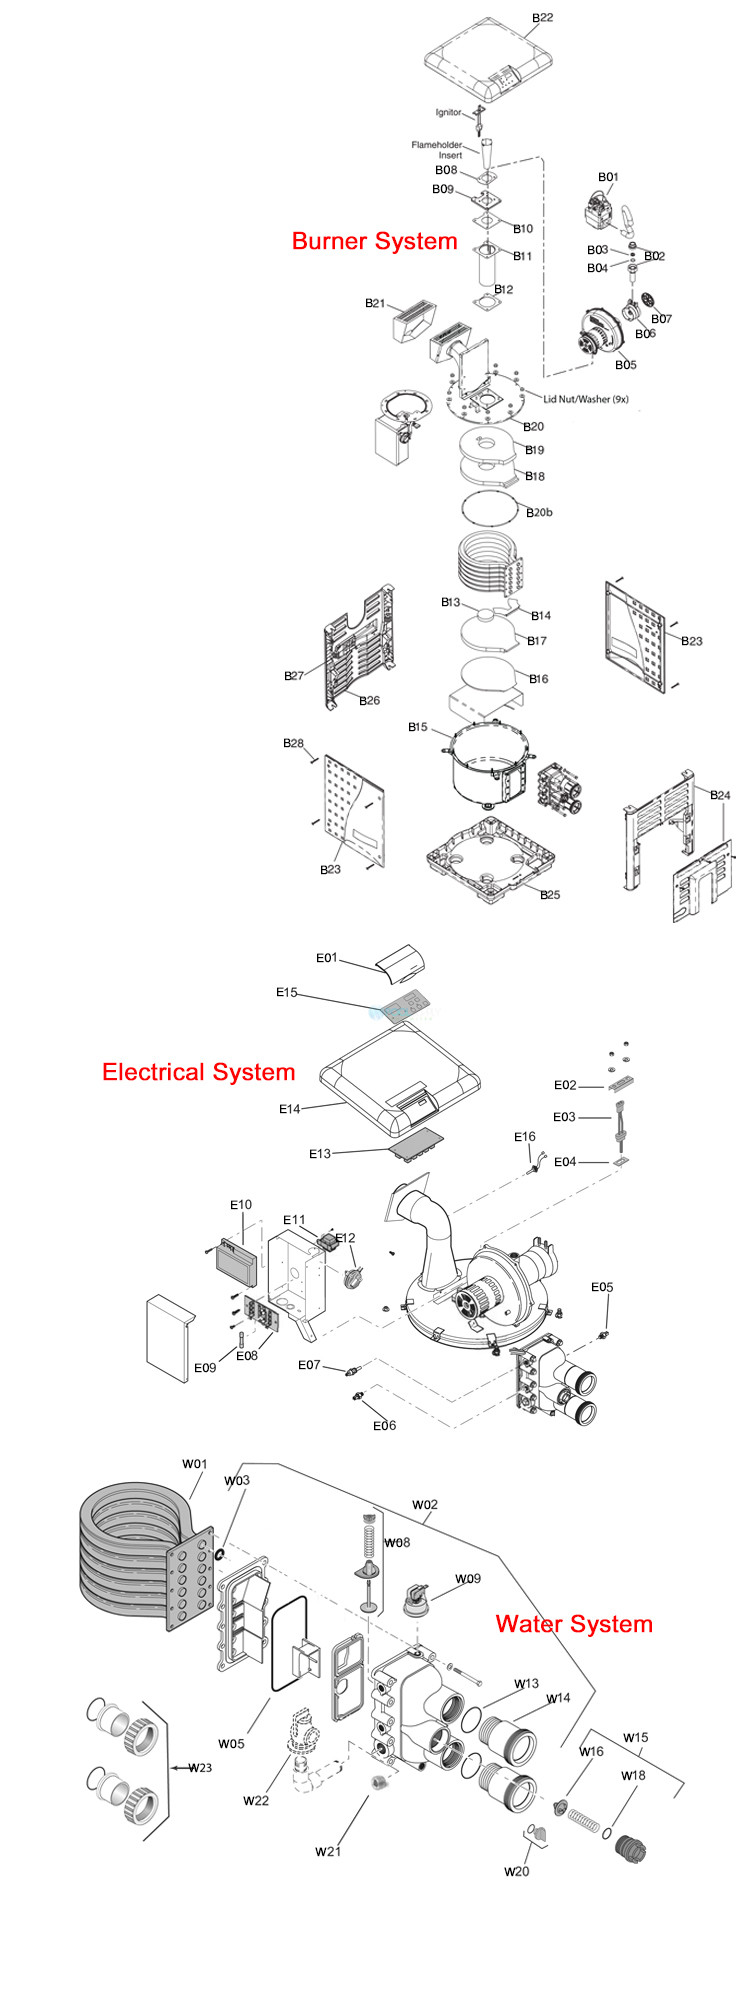 Pentair MasterTemp Low NOx Pool Heater - Electronic Ignition - Propane - 250000 BTU - EC-462027 Parts Schematic